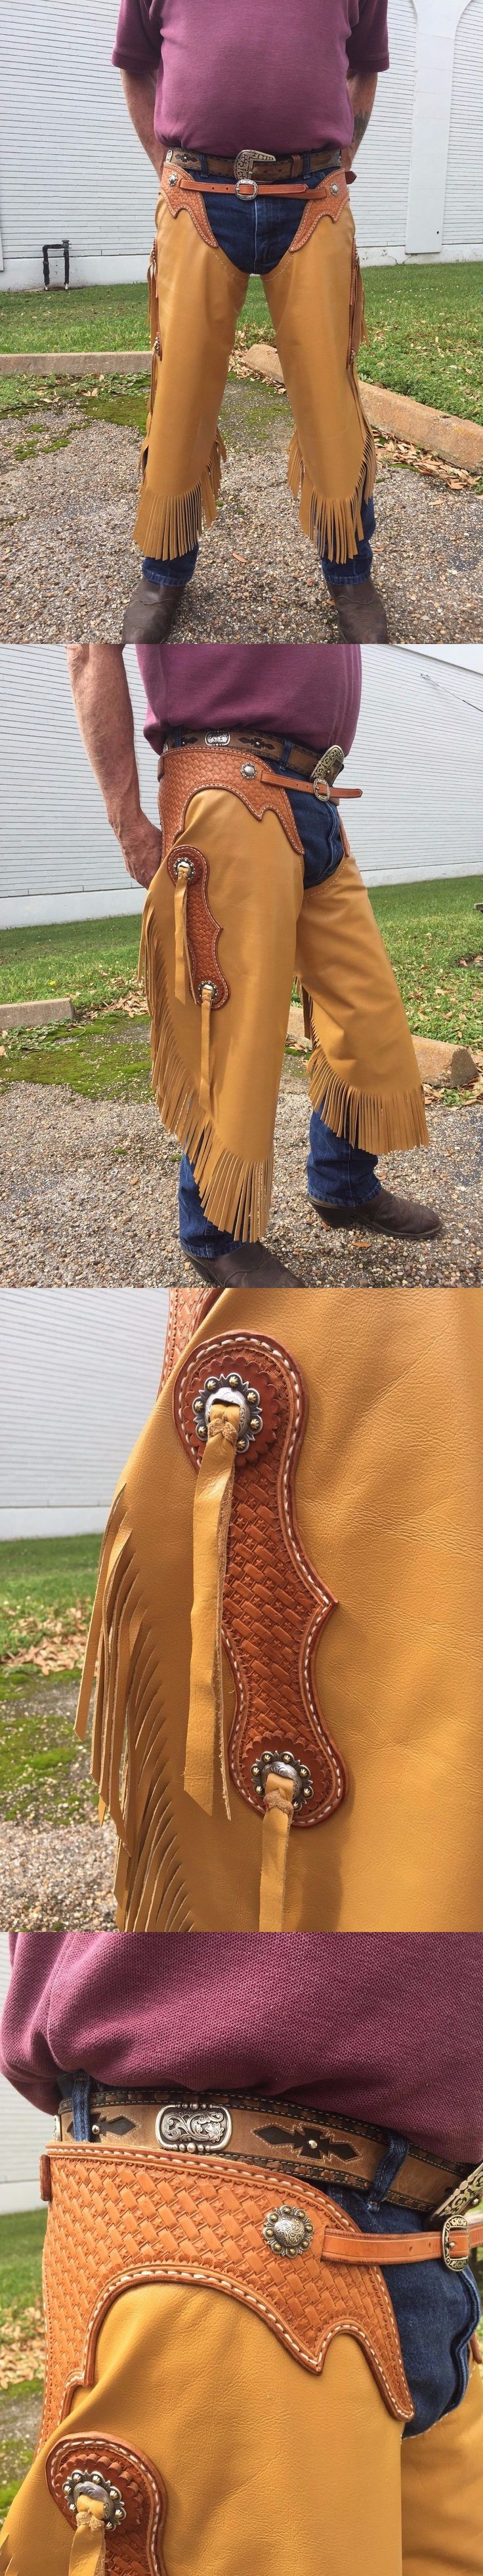 Western Chaps Full Chaps 183358: Hand Made Custom Western Chinks -> BUY IT NOW ONLY: $200 on eBay!